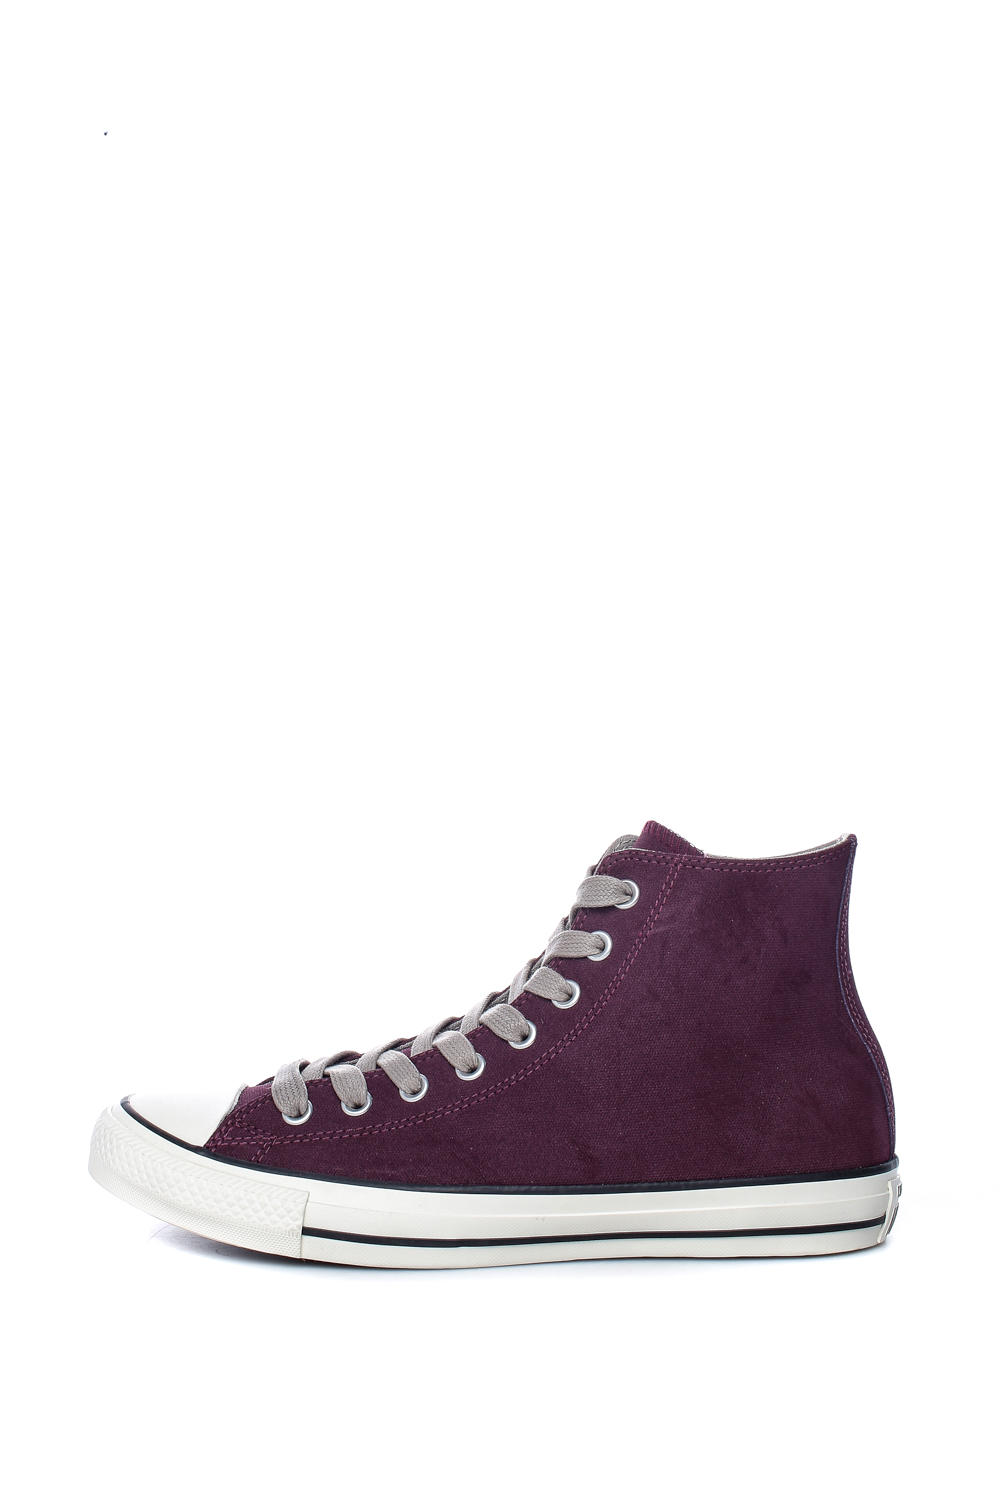 CONVERSE – Unisex μποτάκια Chuck Taylor All Star Hi μoβ. Factory Outlet c0899837da8